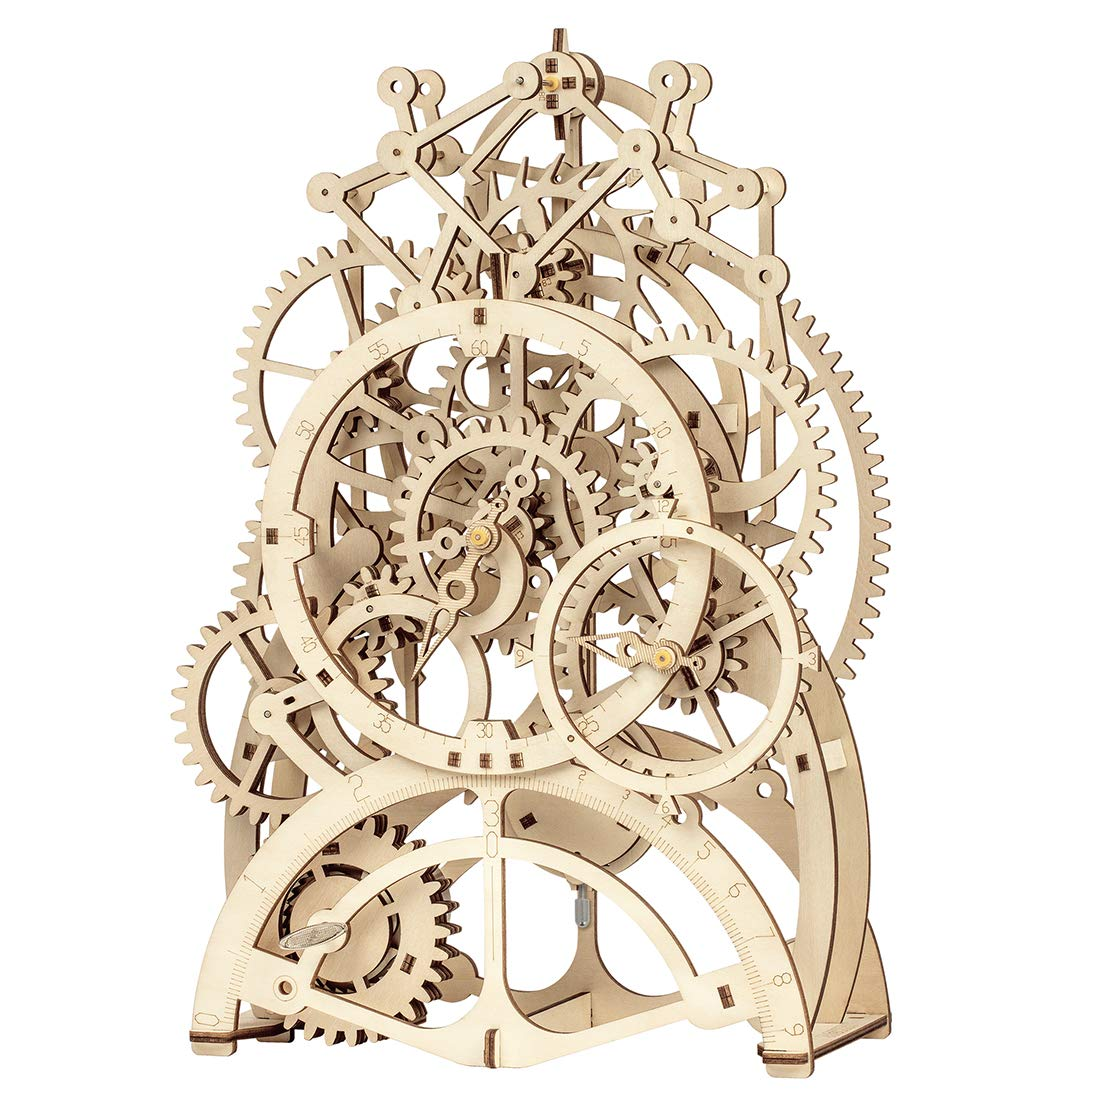 ROKR 3D Wooden Mechanical Pendulum Clock Puzzle,Mechanical Gears Toy Building Set,Family Wooden Craft KIT Supplies-Best Birthday Gifts for Kids Adults to Build by ROKR